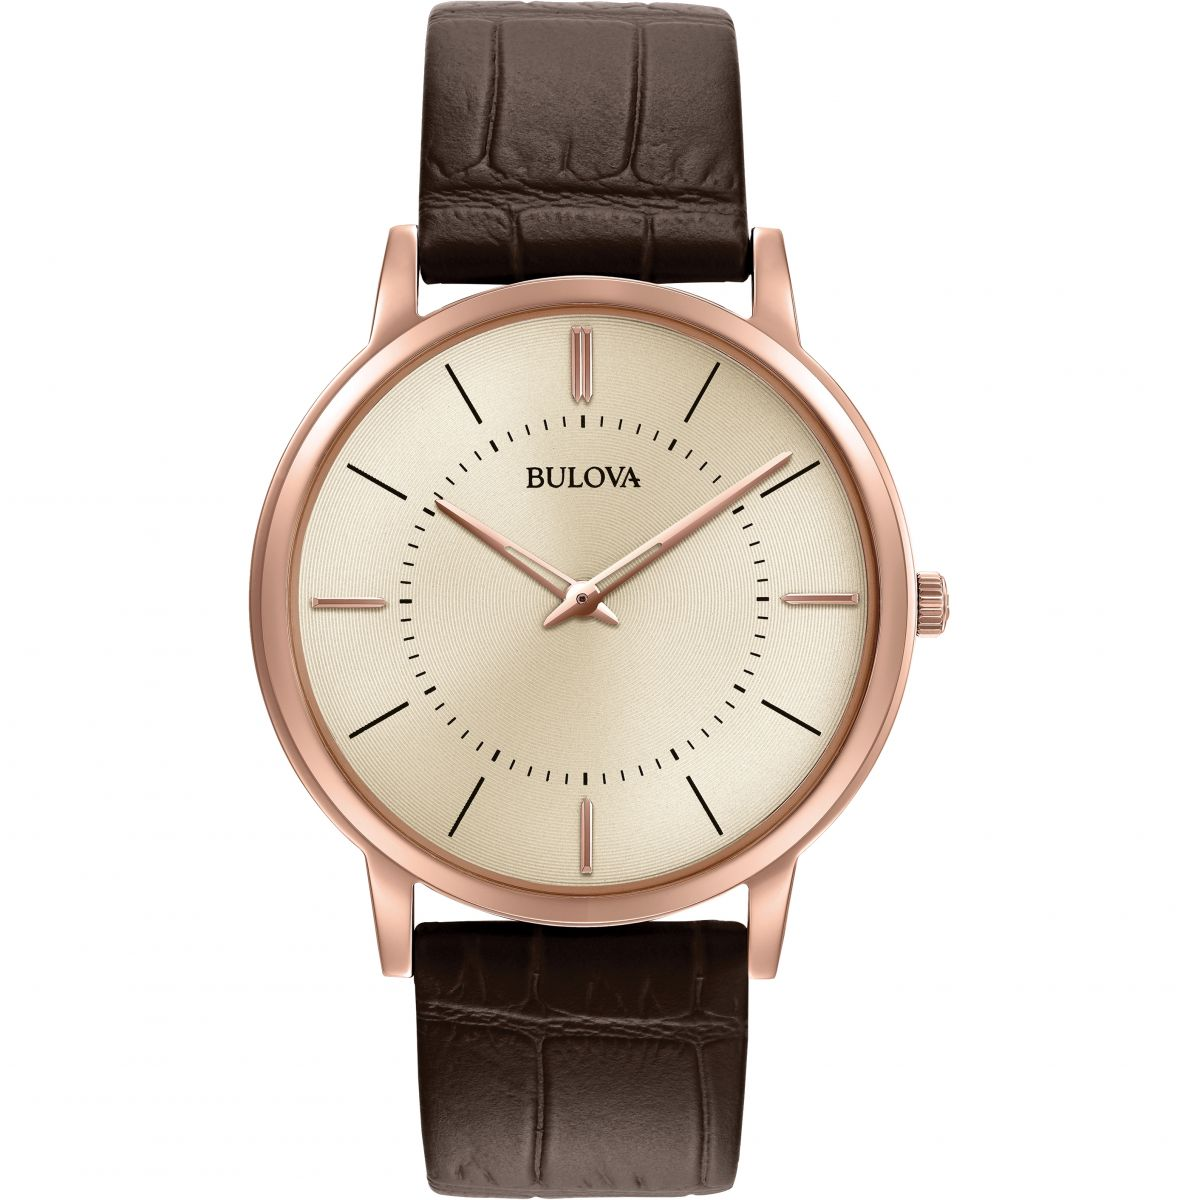 Gents Bulova Ultra Slim Watch (97A126) | WatchShop.com™